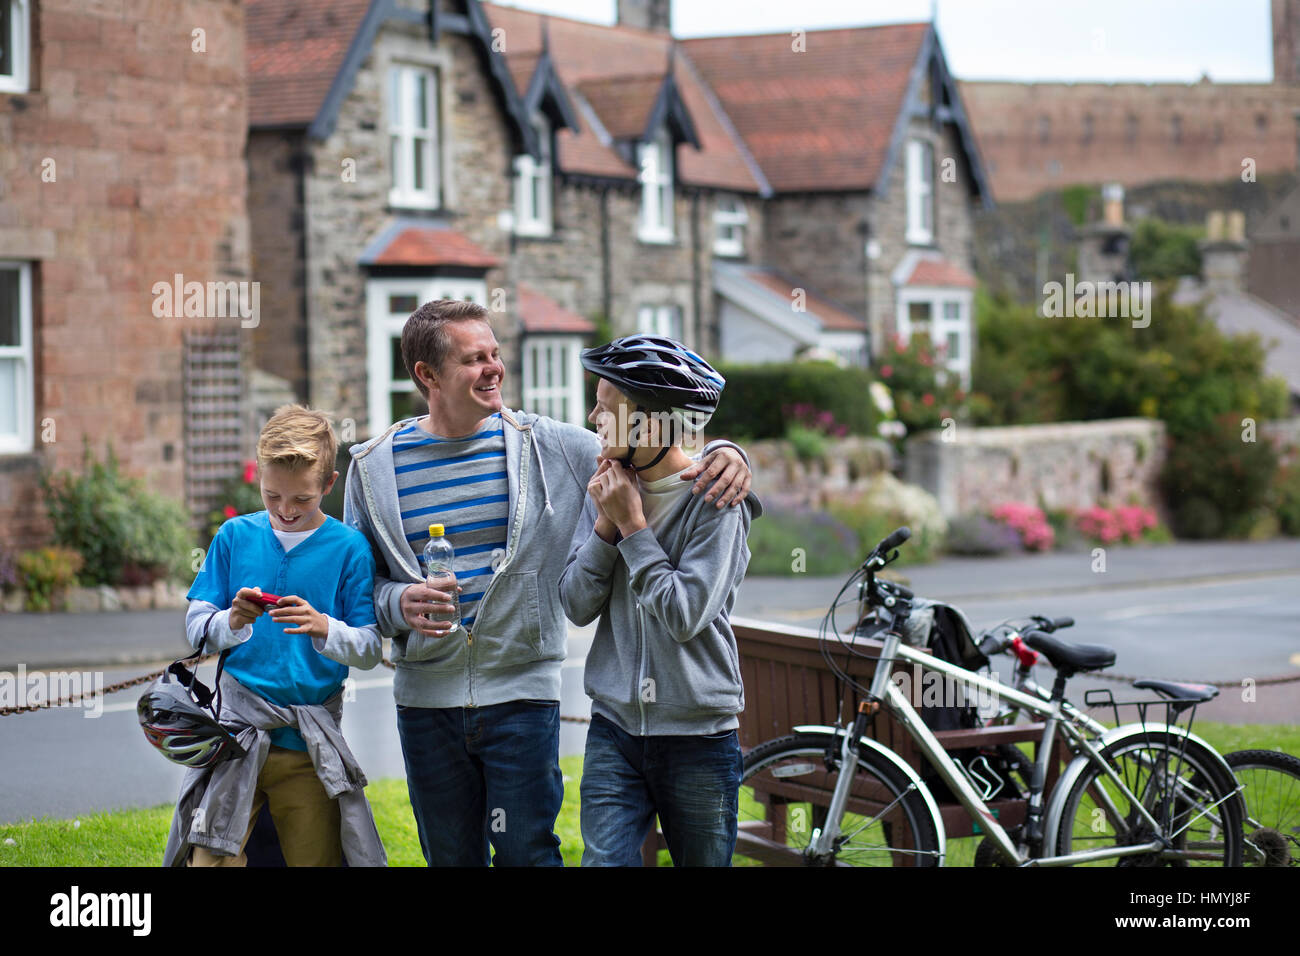 Father and Sons stopping in a village in the middle of their bike ride to take a drink. They are wearing casual - Stock Image